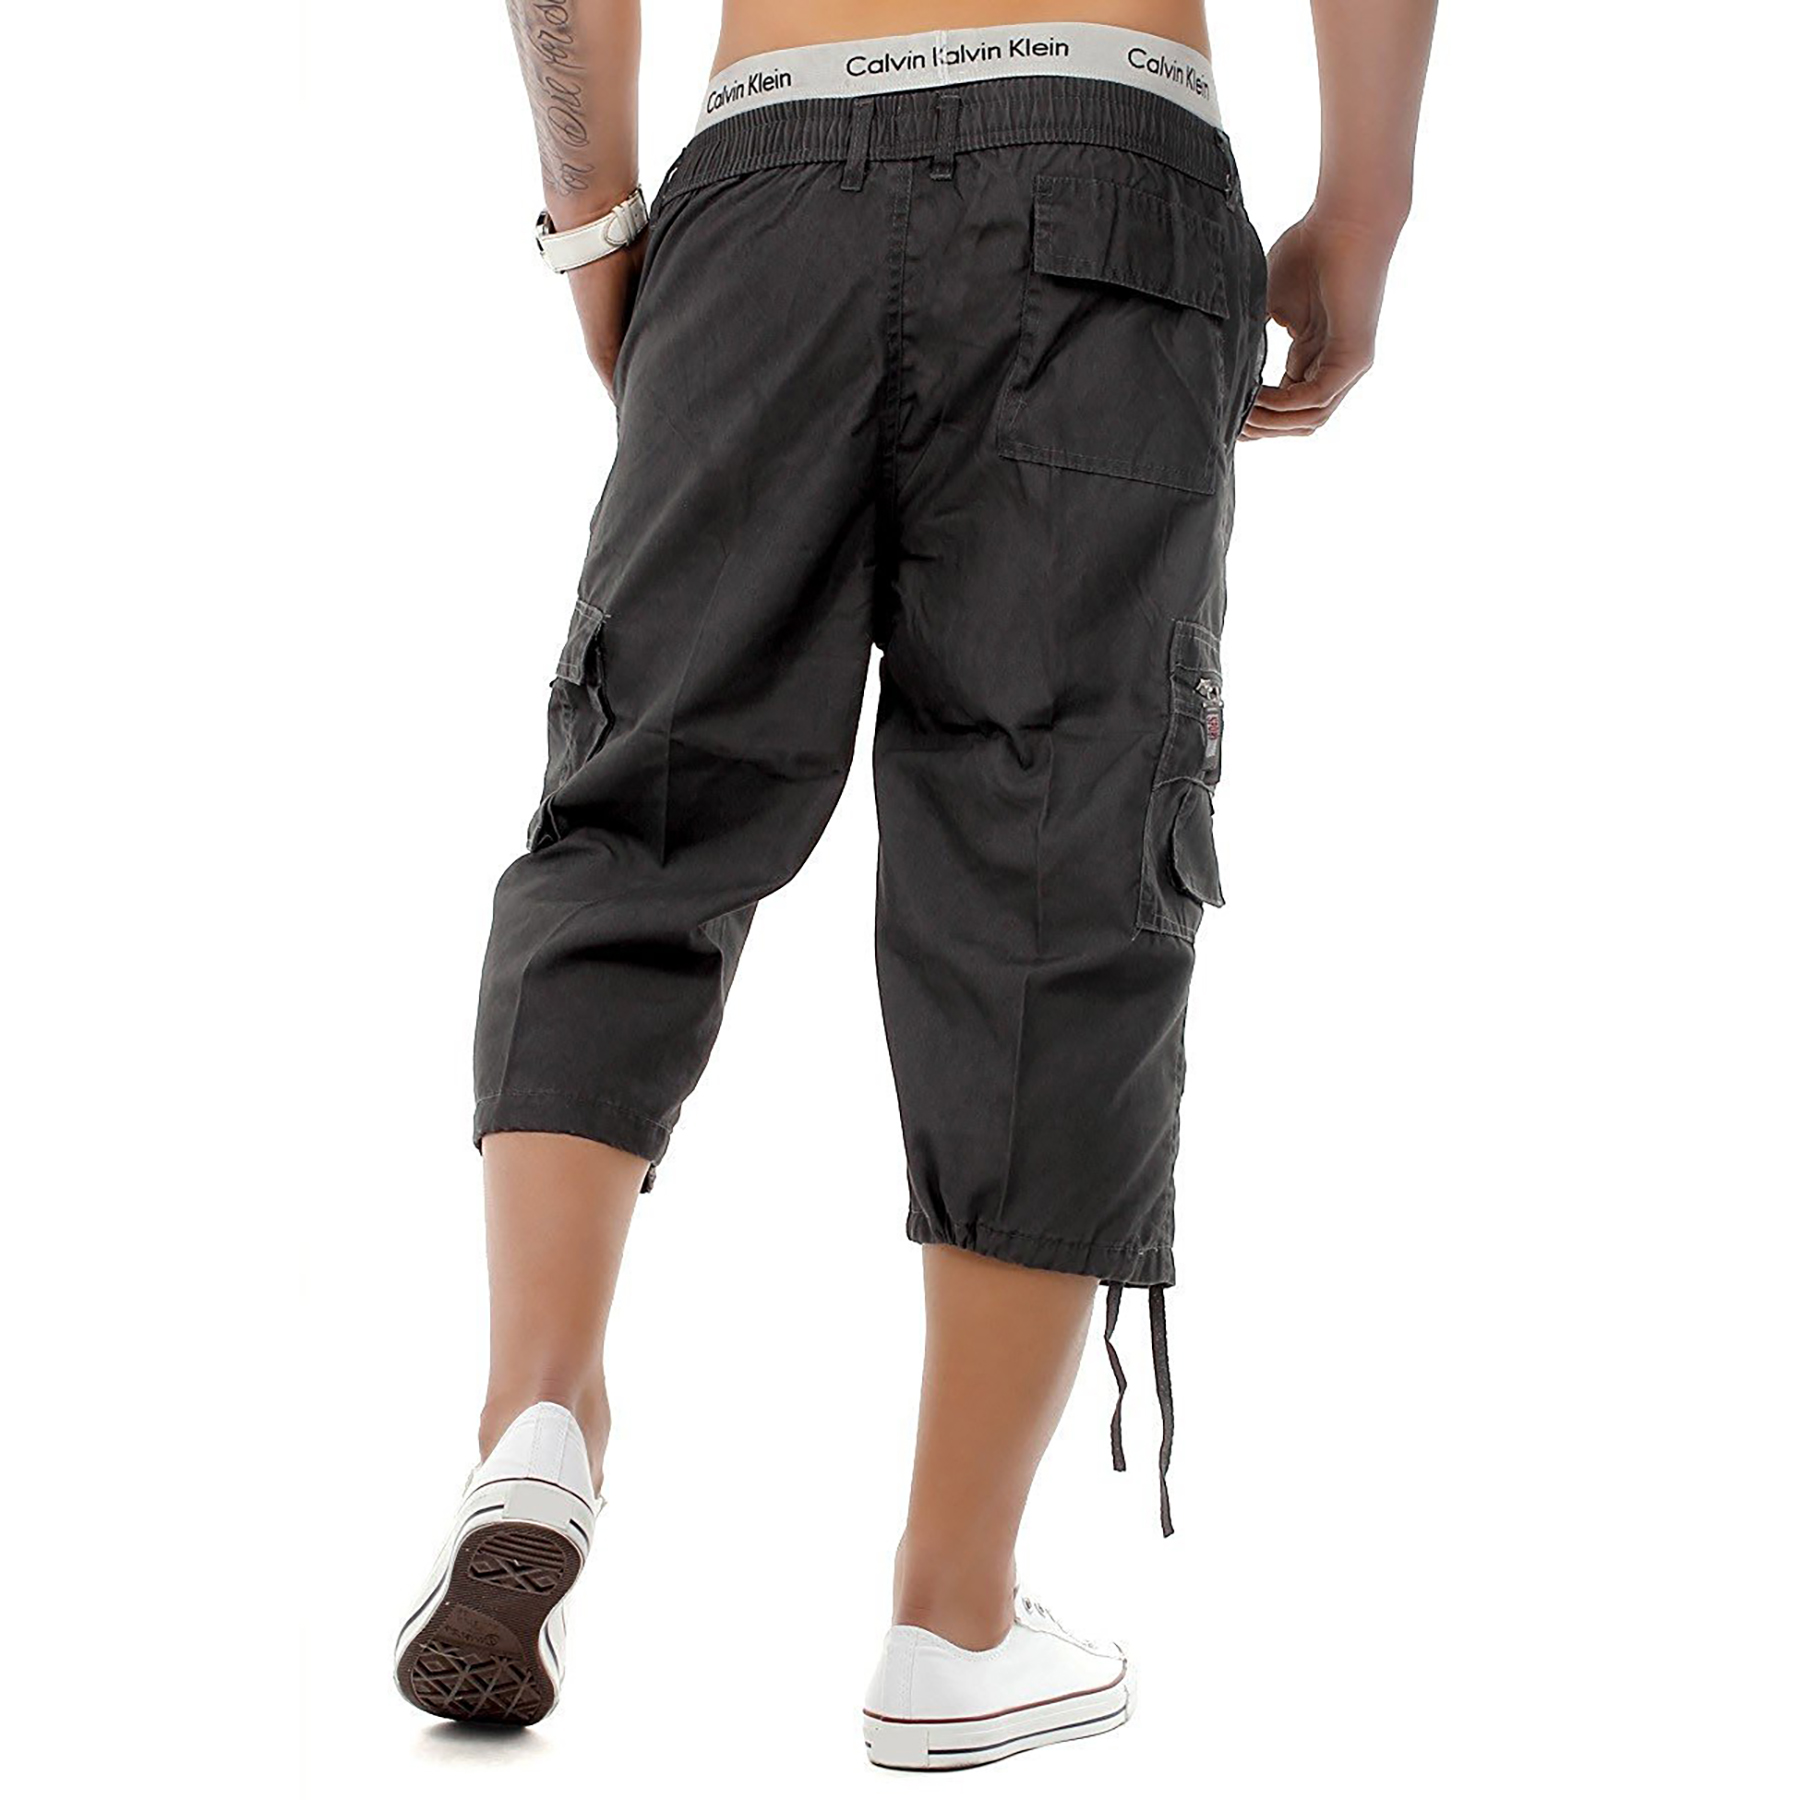 Mens-3-4-Long-Length-Shorts-Elasticated-Waist-Cargo-Combat-Three-Quarter-Shorts thumbnail 8